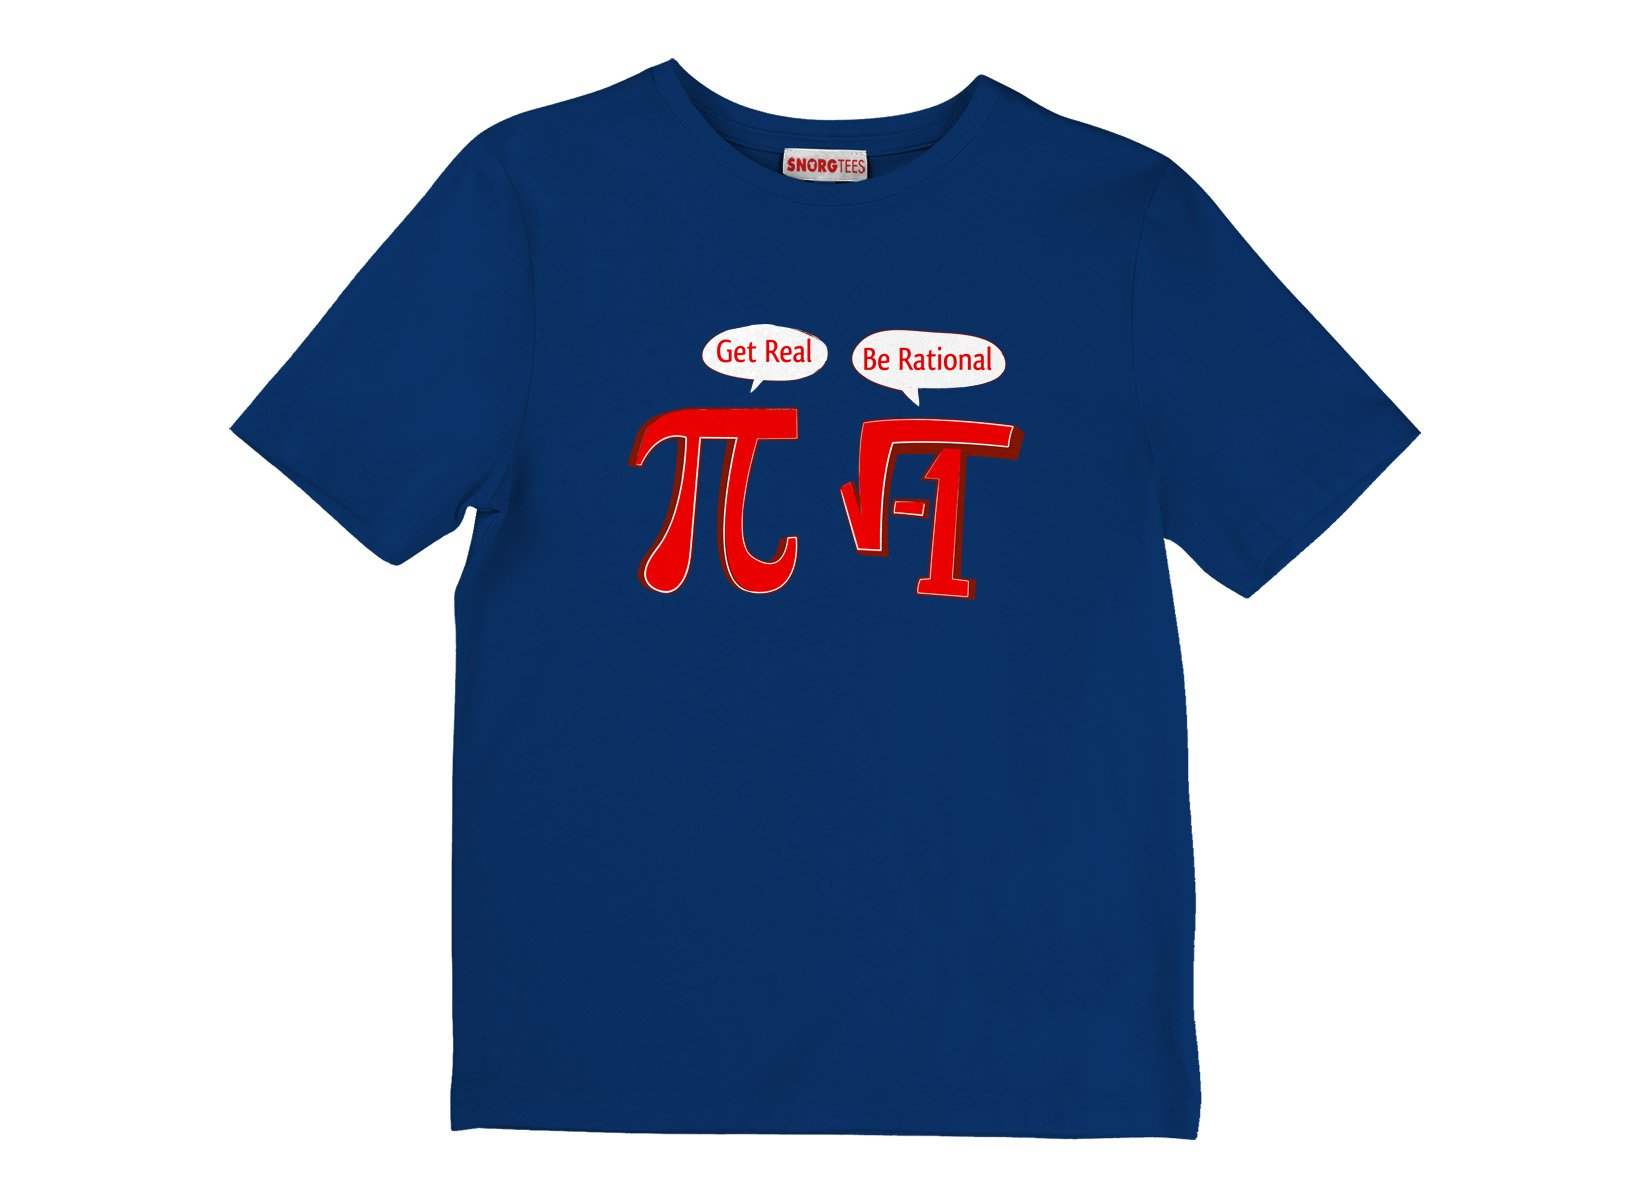 Pi Be Rational on Kids T-Shirt